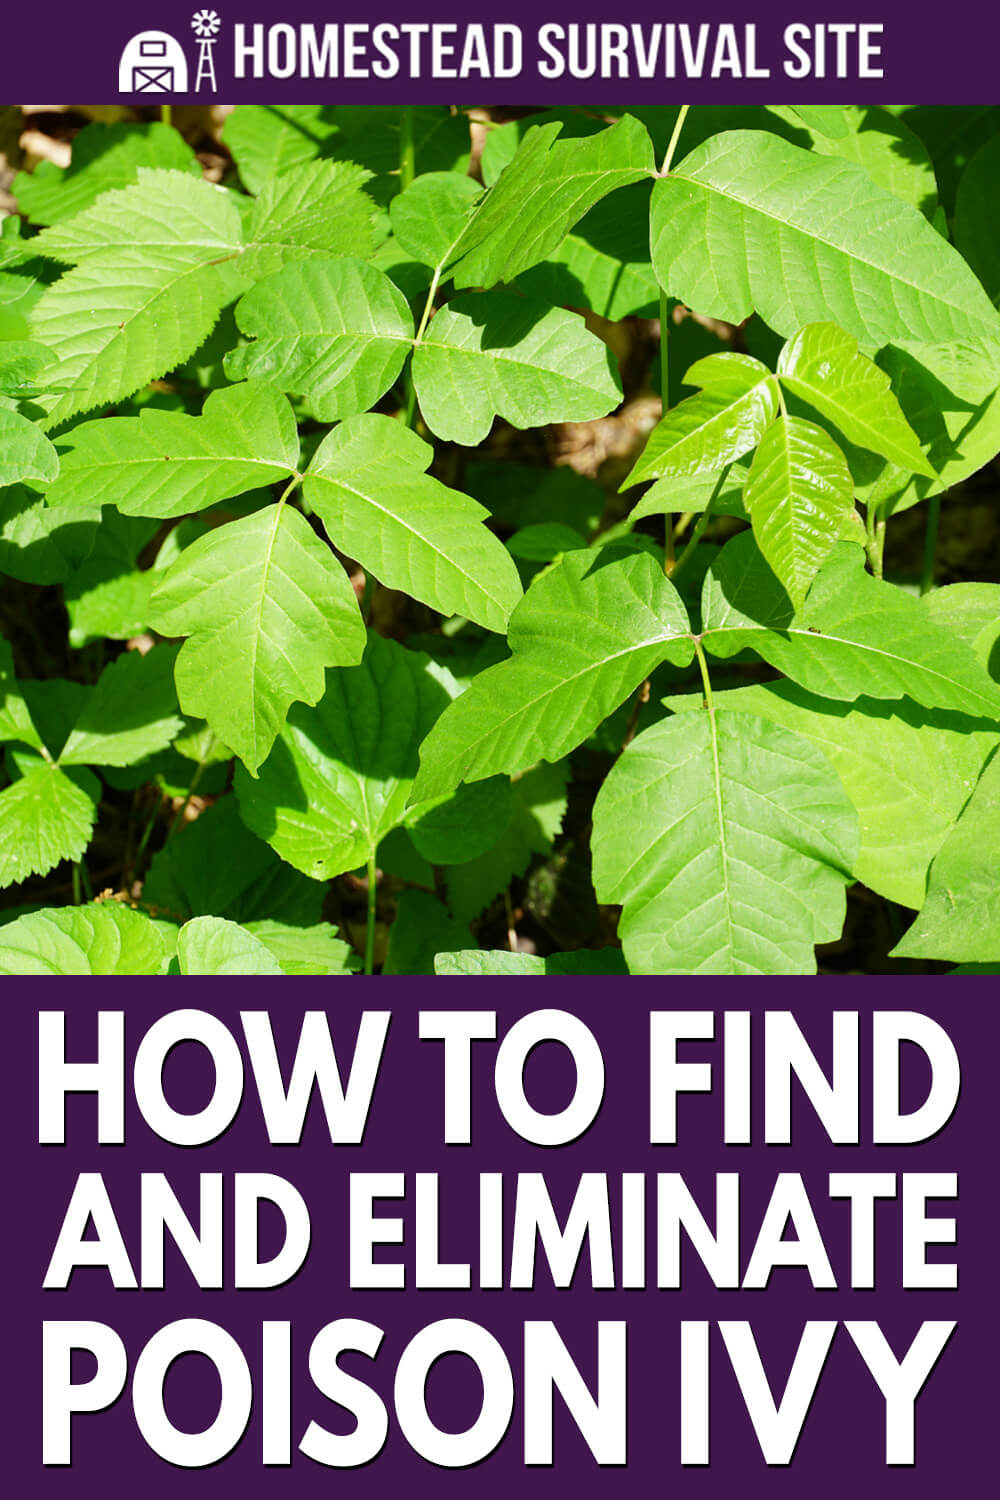 How To Find And Eliminate Poison Ivy